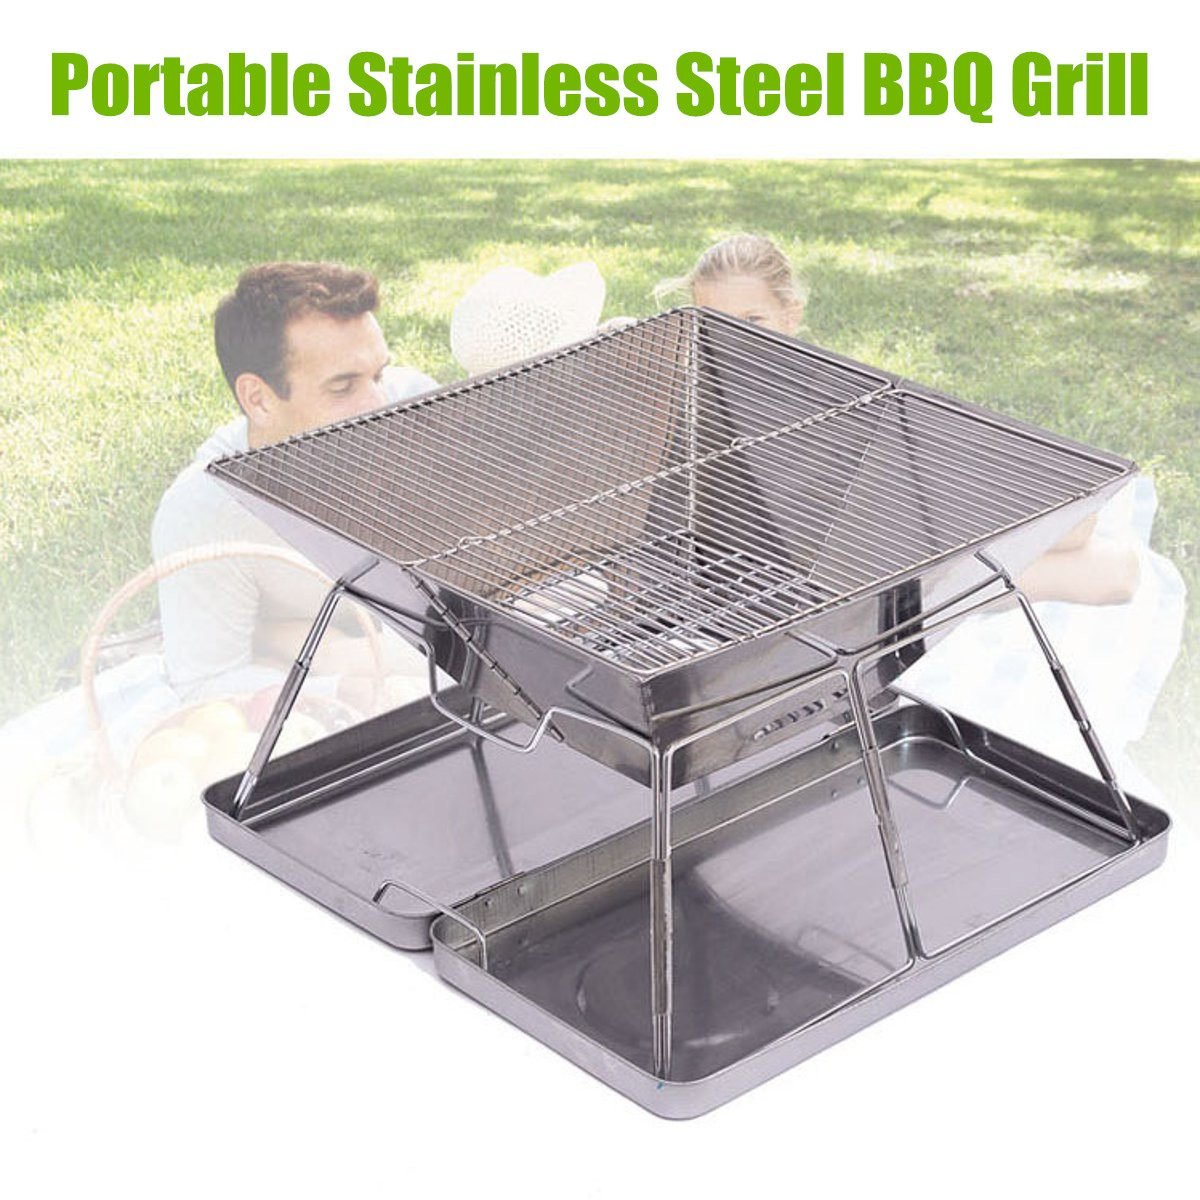 Stainless Steel Outdoor Charcoal BBQ Grill Rack Folding BBQ Barbecue Accessories Portable Home Kitchen Camping Cooking ToolsStainless Steel Outdoor Charcoal BBQ Grill Rack Folding BBQ Barbecue Accessories Portable Home Kitchen Camping Cooking Tools